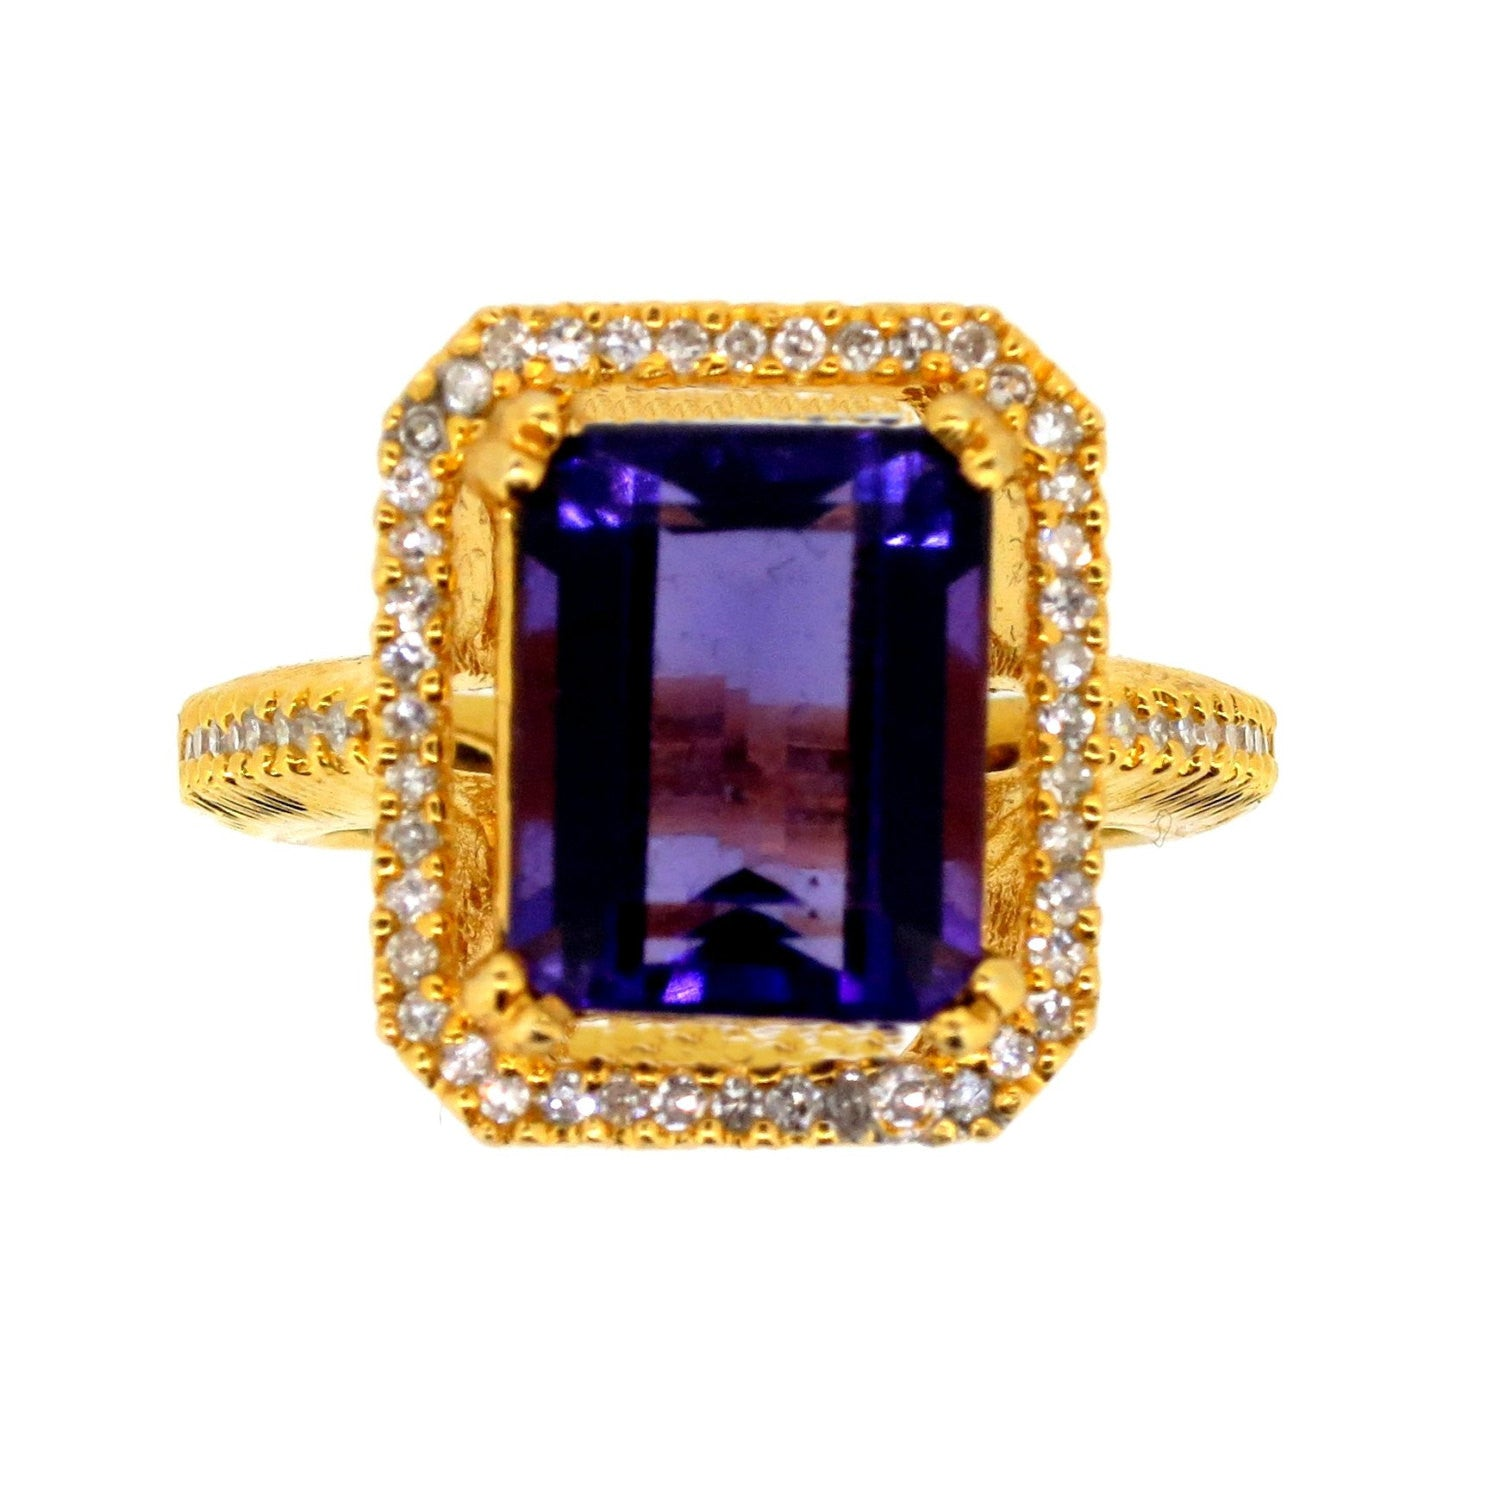 SALE! Amethyst Gemstone and Diamond Cocktail Ring, Alternative Engagement Ring